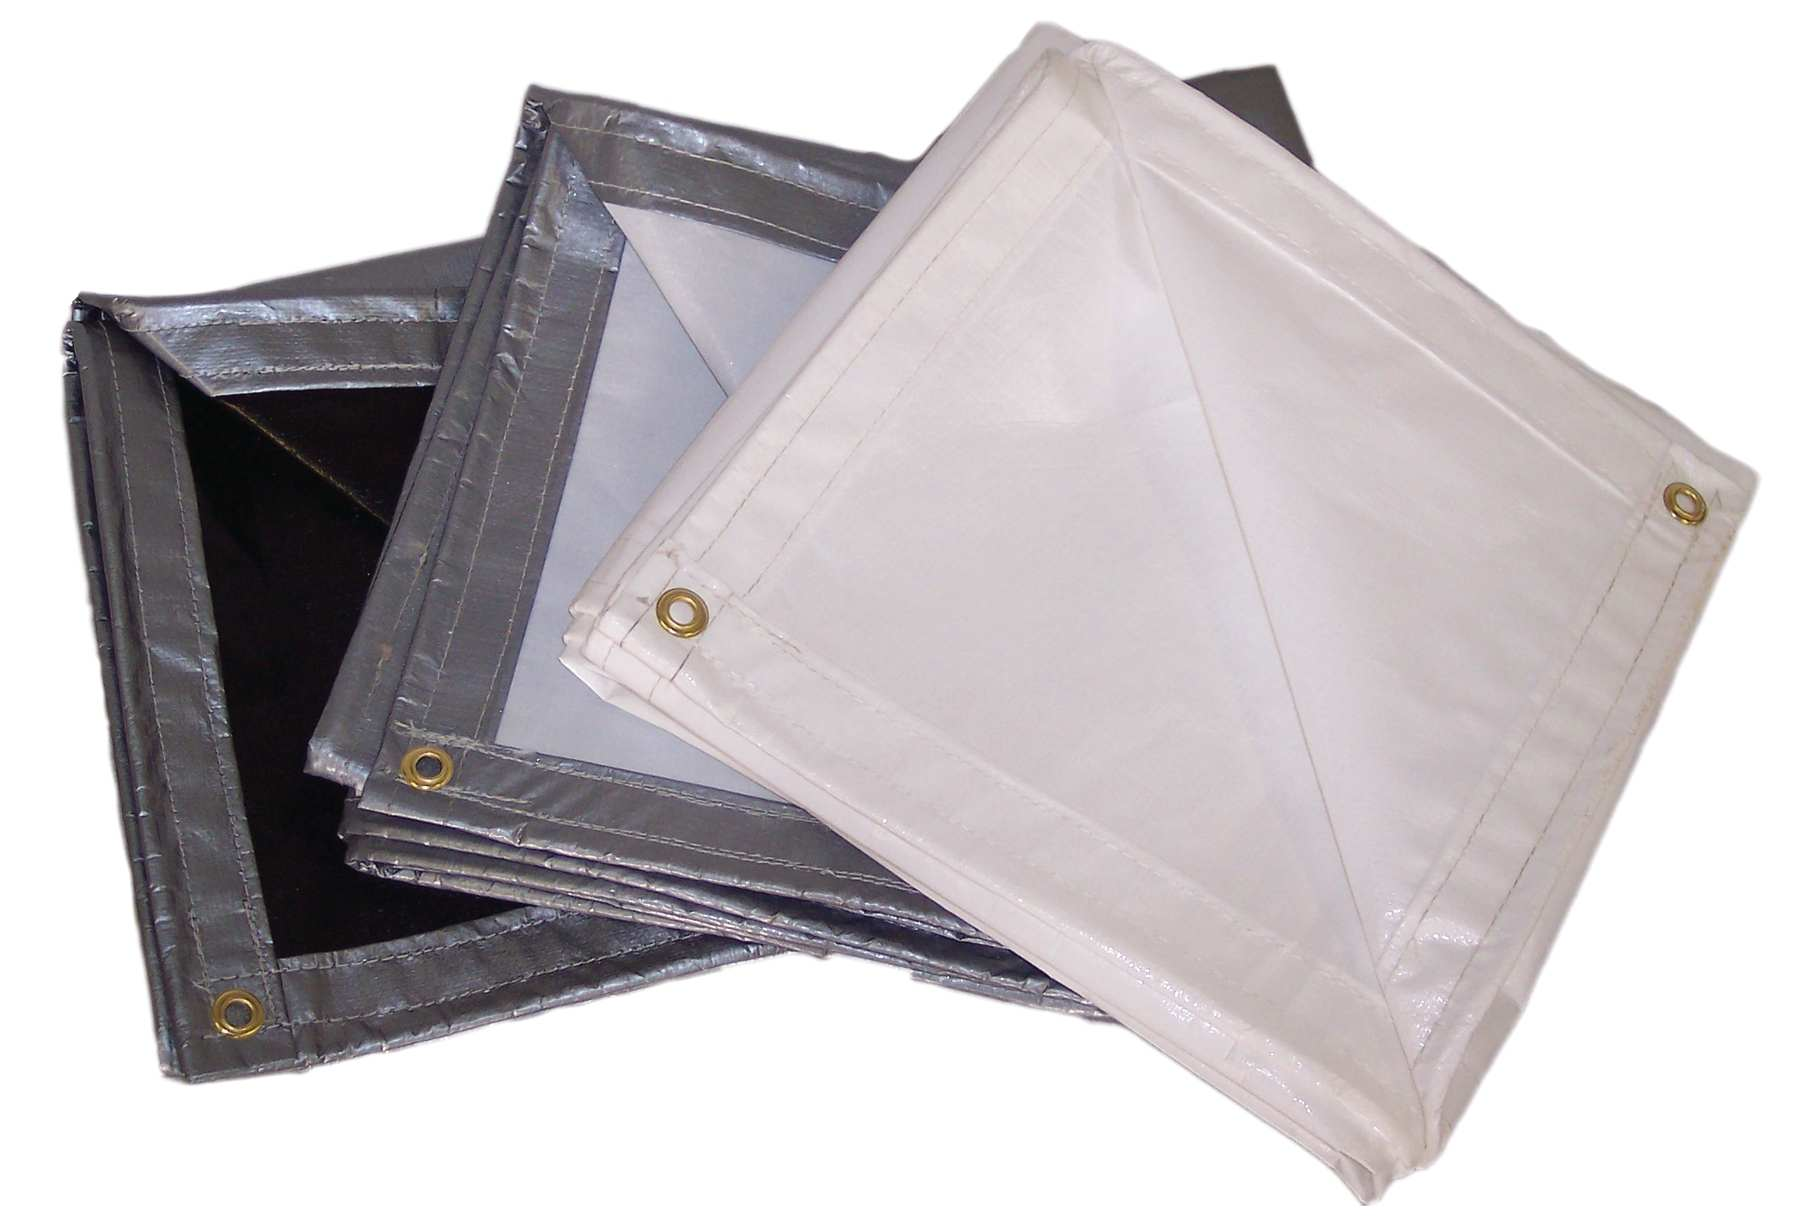 Heavy Duty Reinforced Polyethylene Tarps – 12 mil., 7 oz./sq. Yd.; Size (ft.) 20 x 20